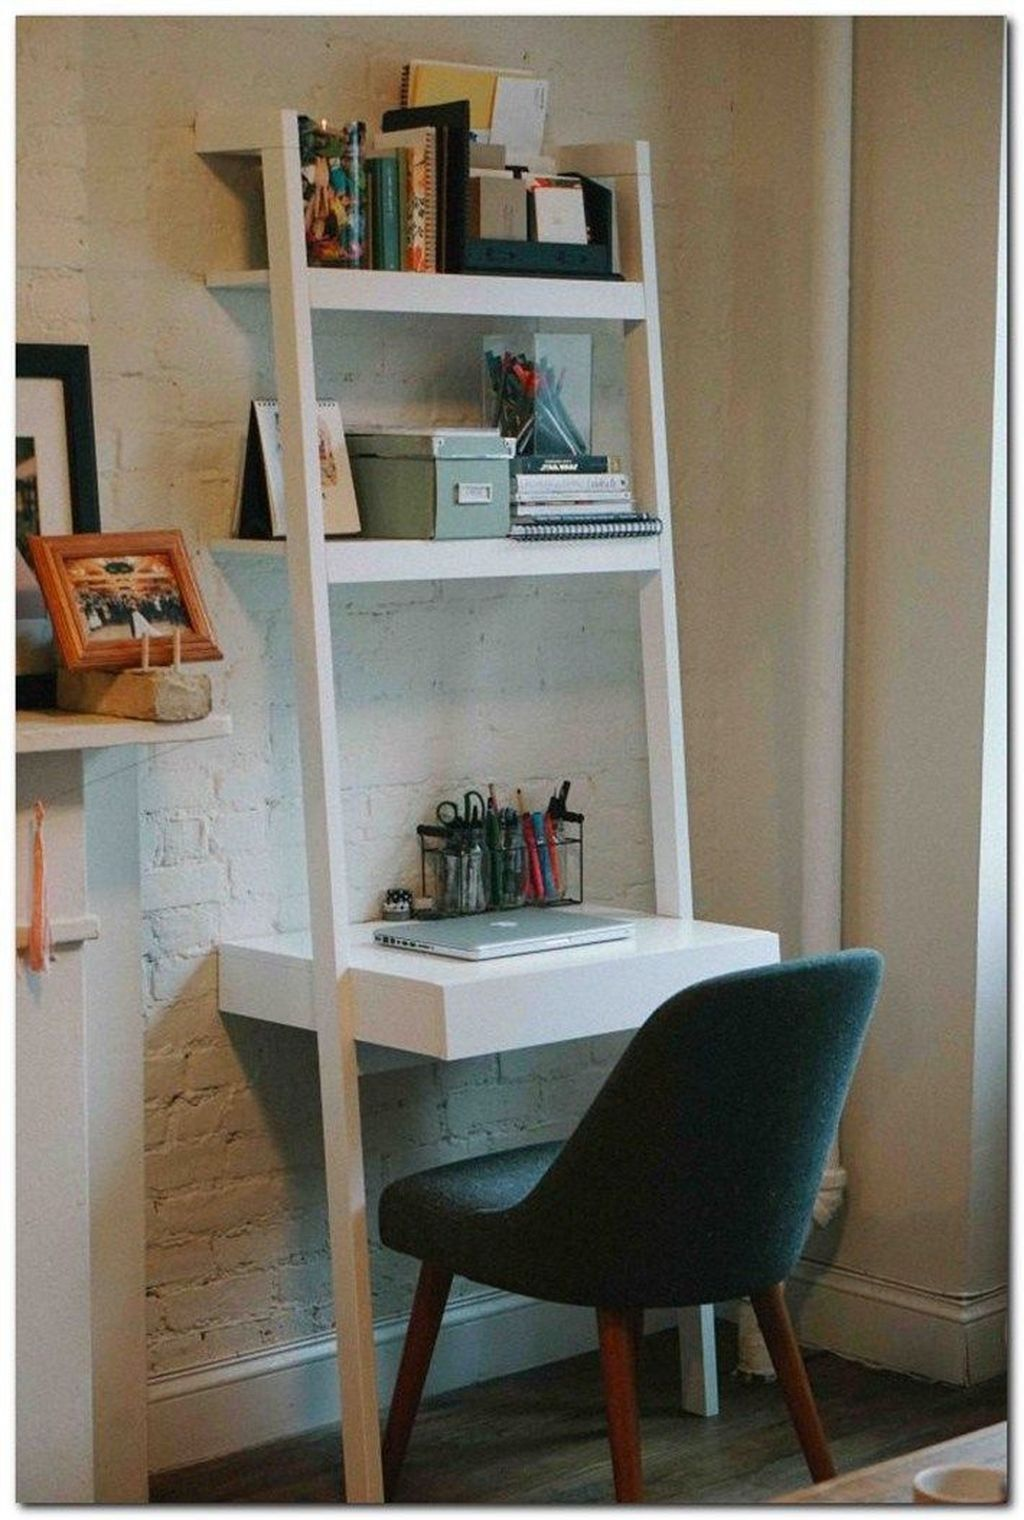 Clever small apartment hacks organization ideas 24